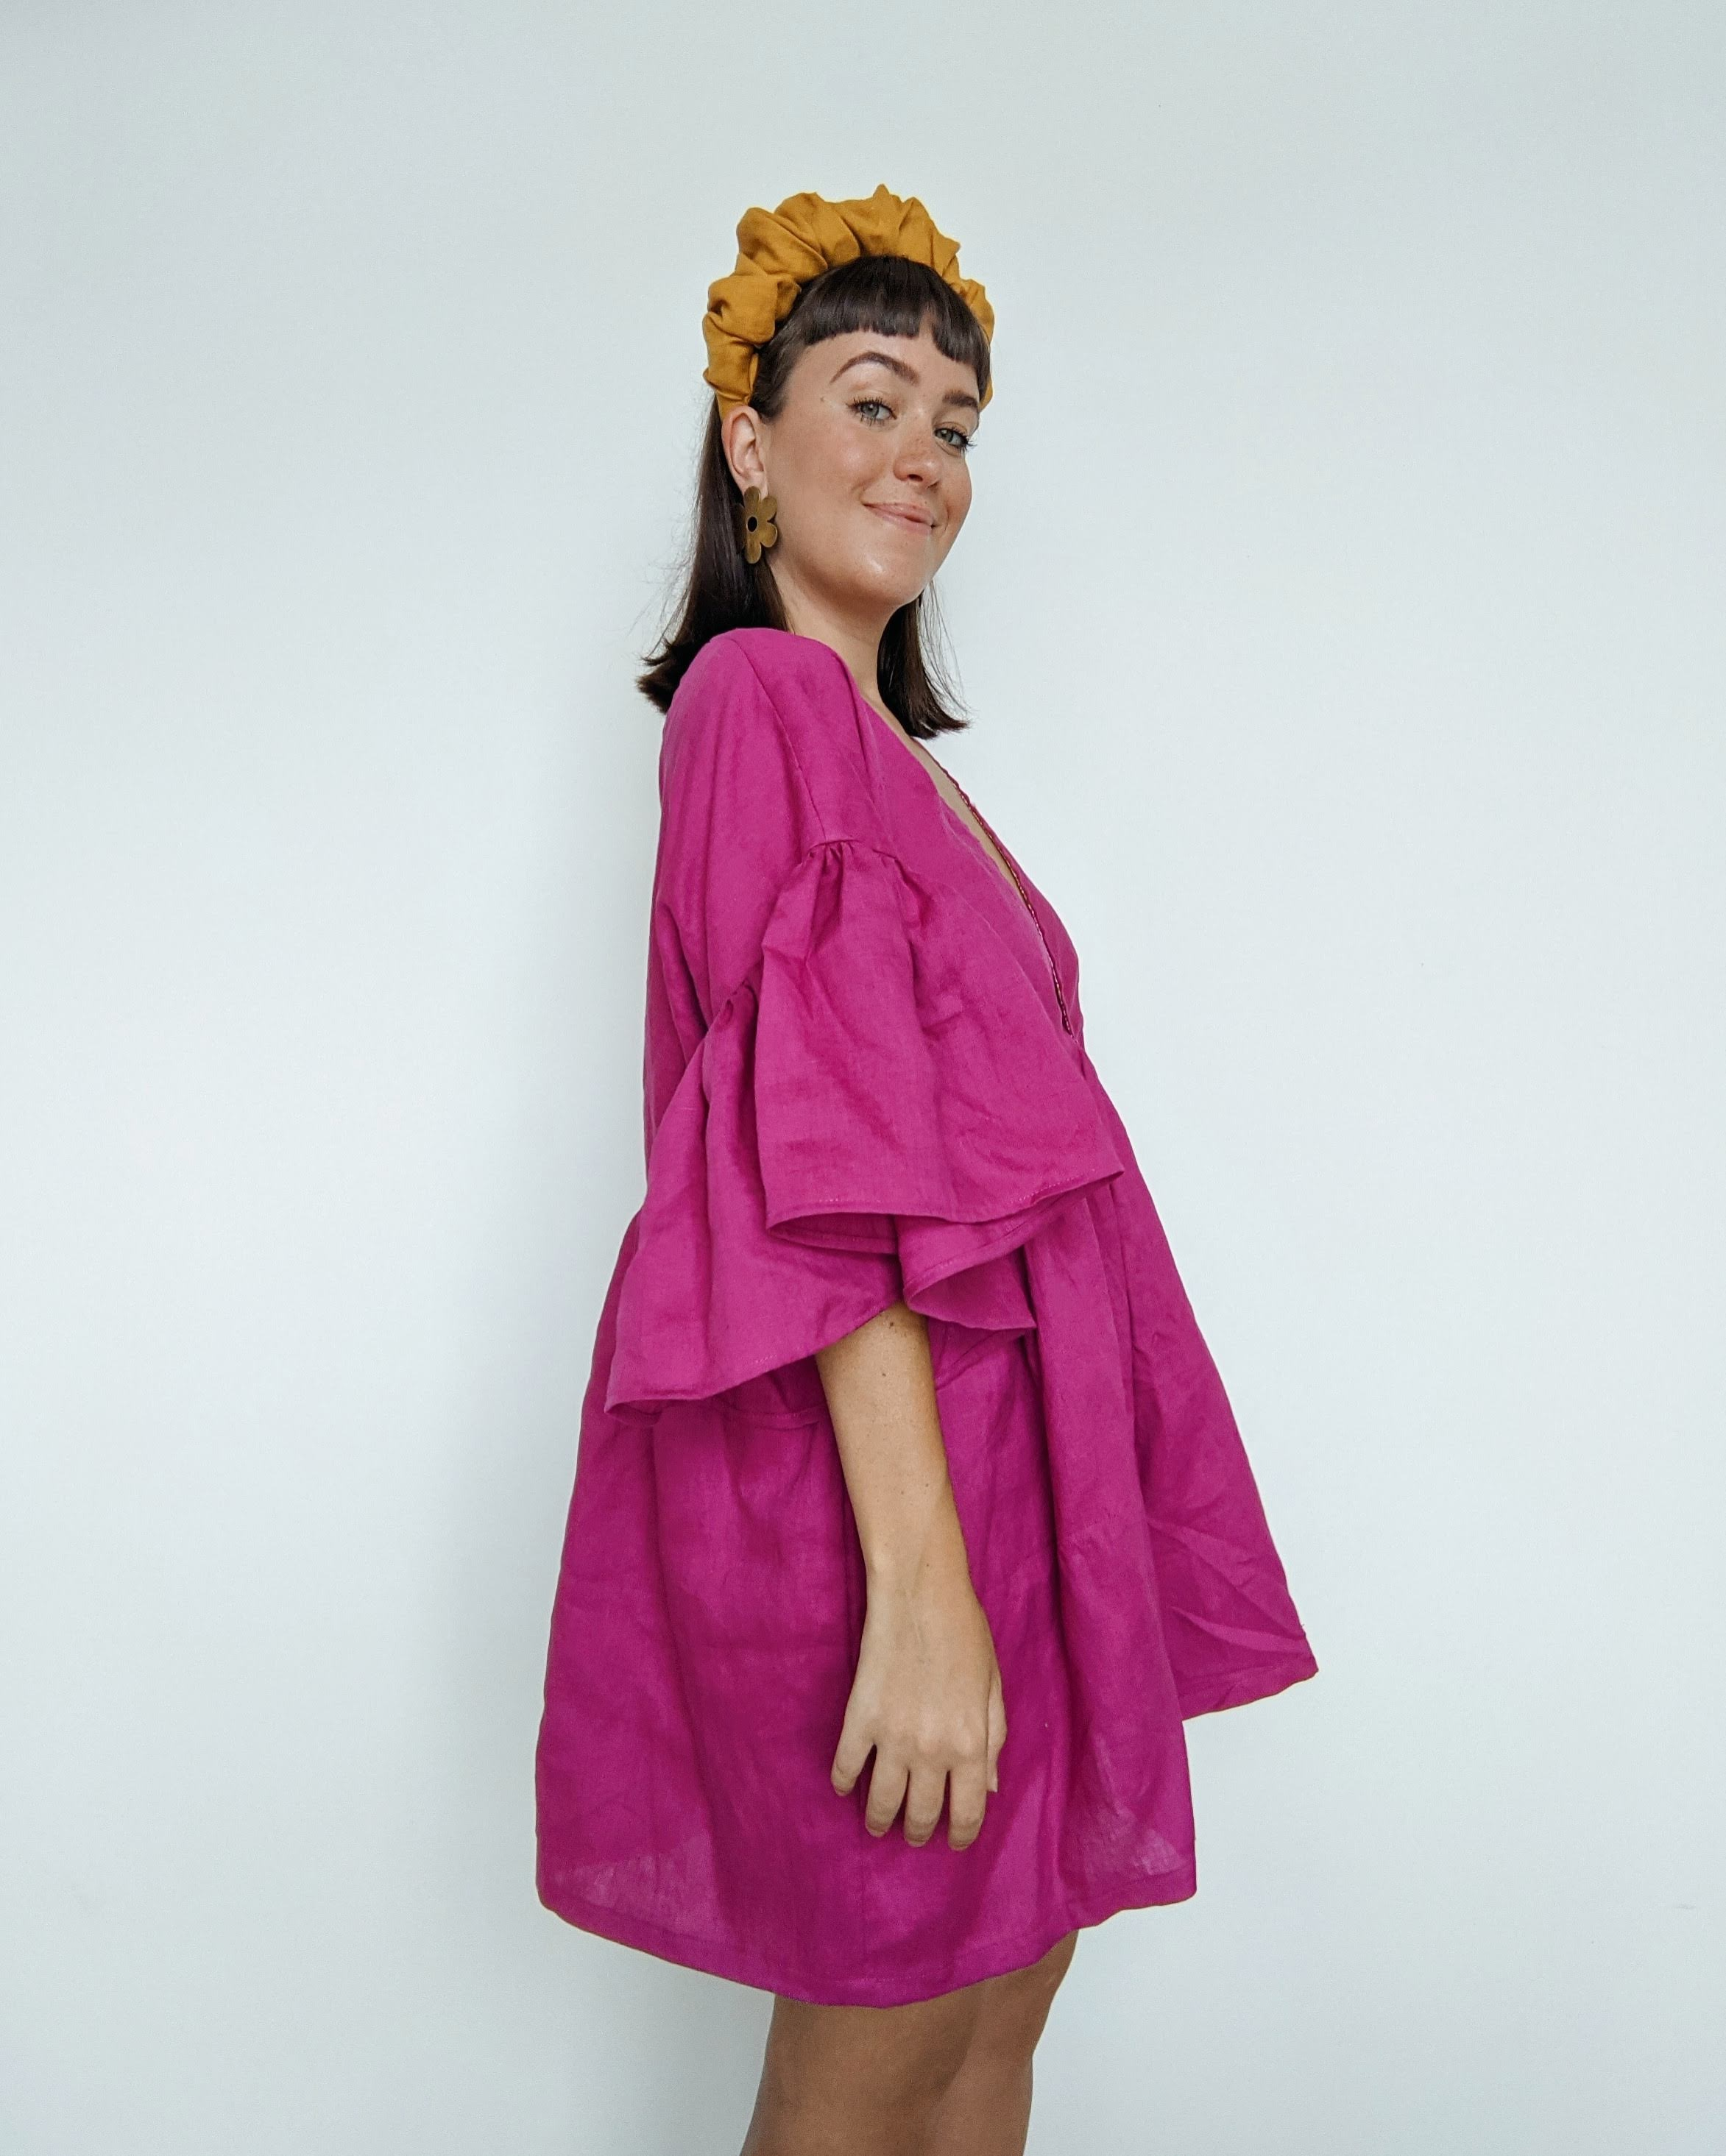 Daisy stands side on smiling towards the camera.  She is wearing a magenta pink linen dress with a golden linen headband.